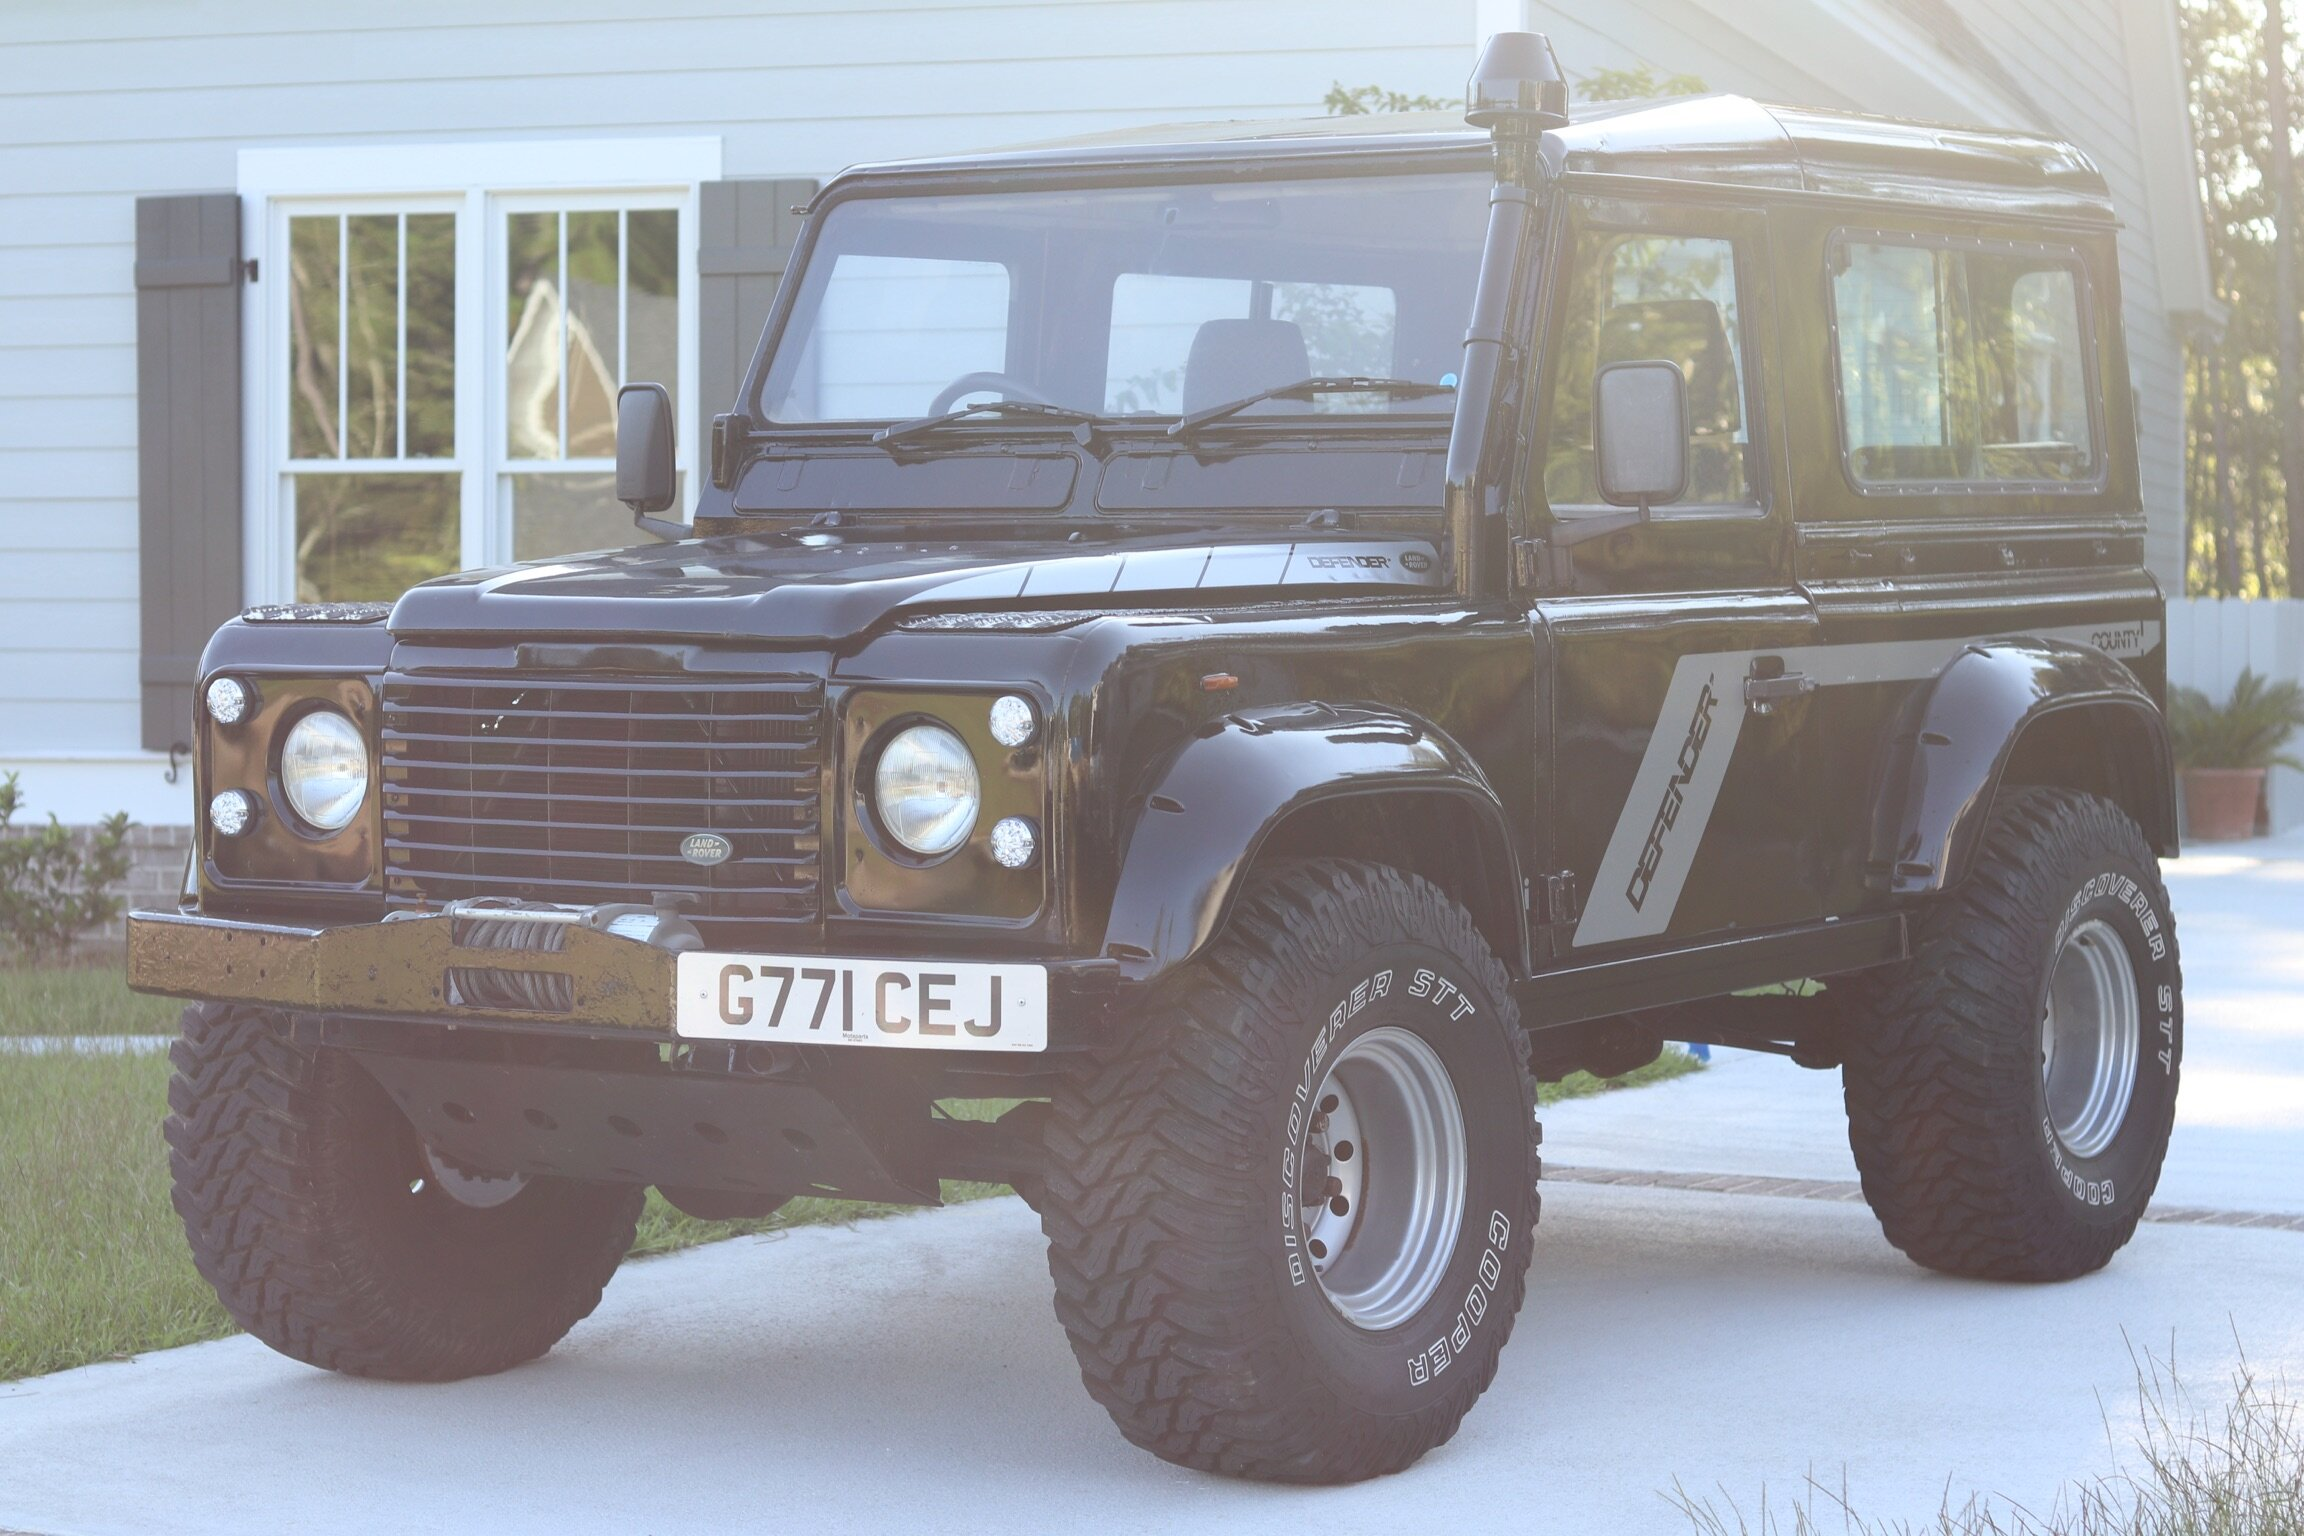 1990 Defender 90 - This Defender 90 is ready for adventure. Equipped with a 200 TDI motor, snorkel, winch, lift kit & beefy tires & bigger wheel wells to accommodate, this Landy is ready for the beach, mountains or wherever your heart may wander.$25,000. AVAILABLE